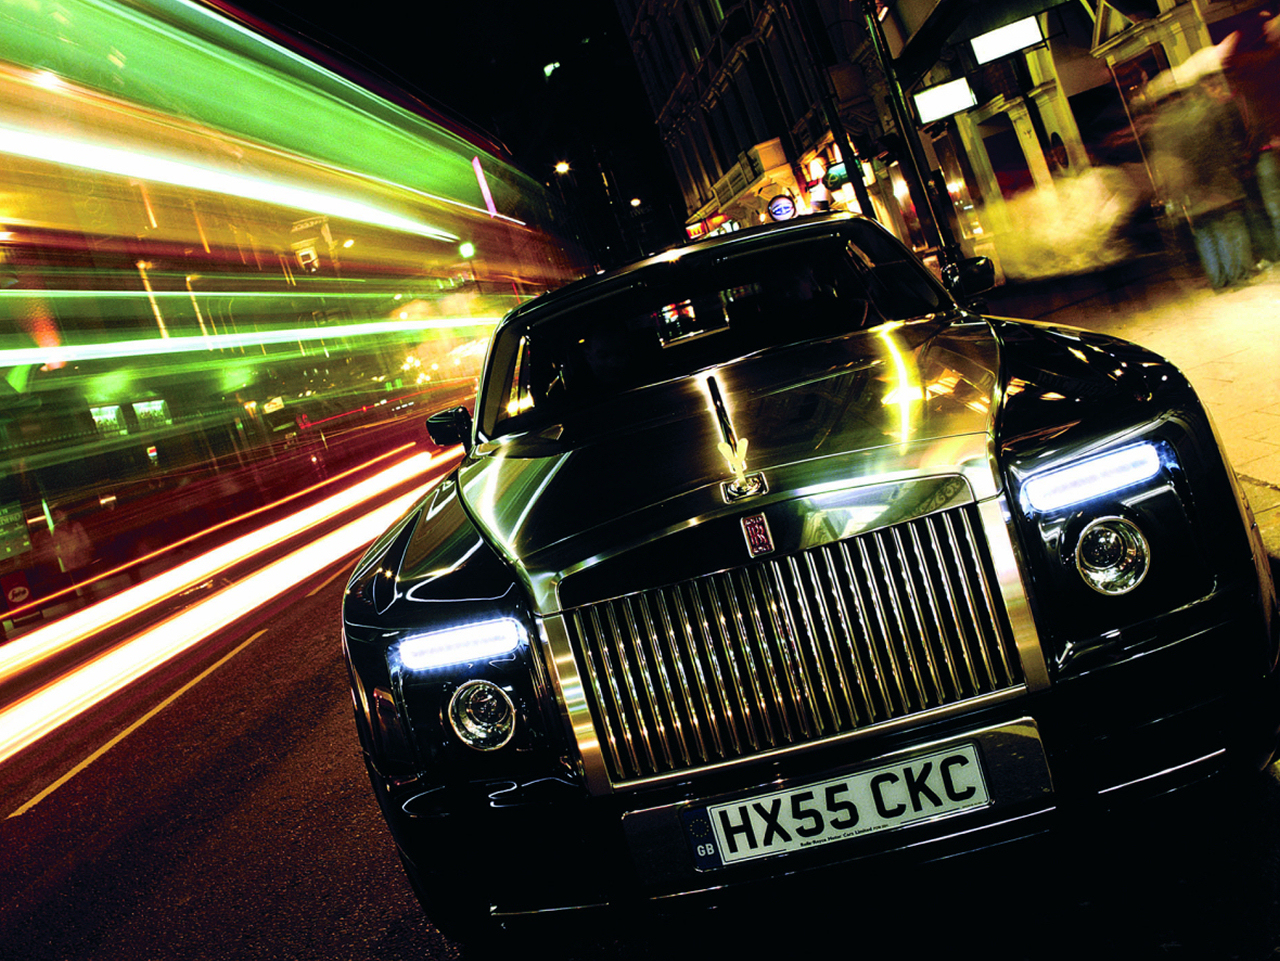 Rolls Royce Phantom reflects the city lights